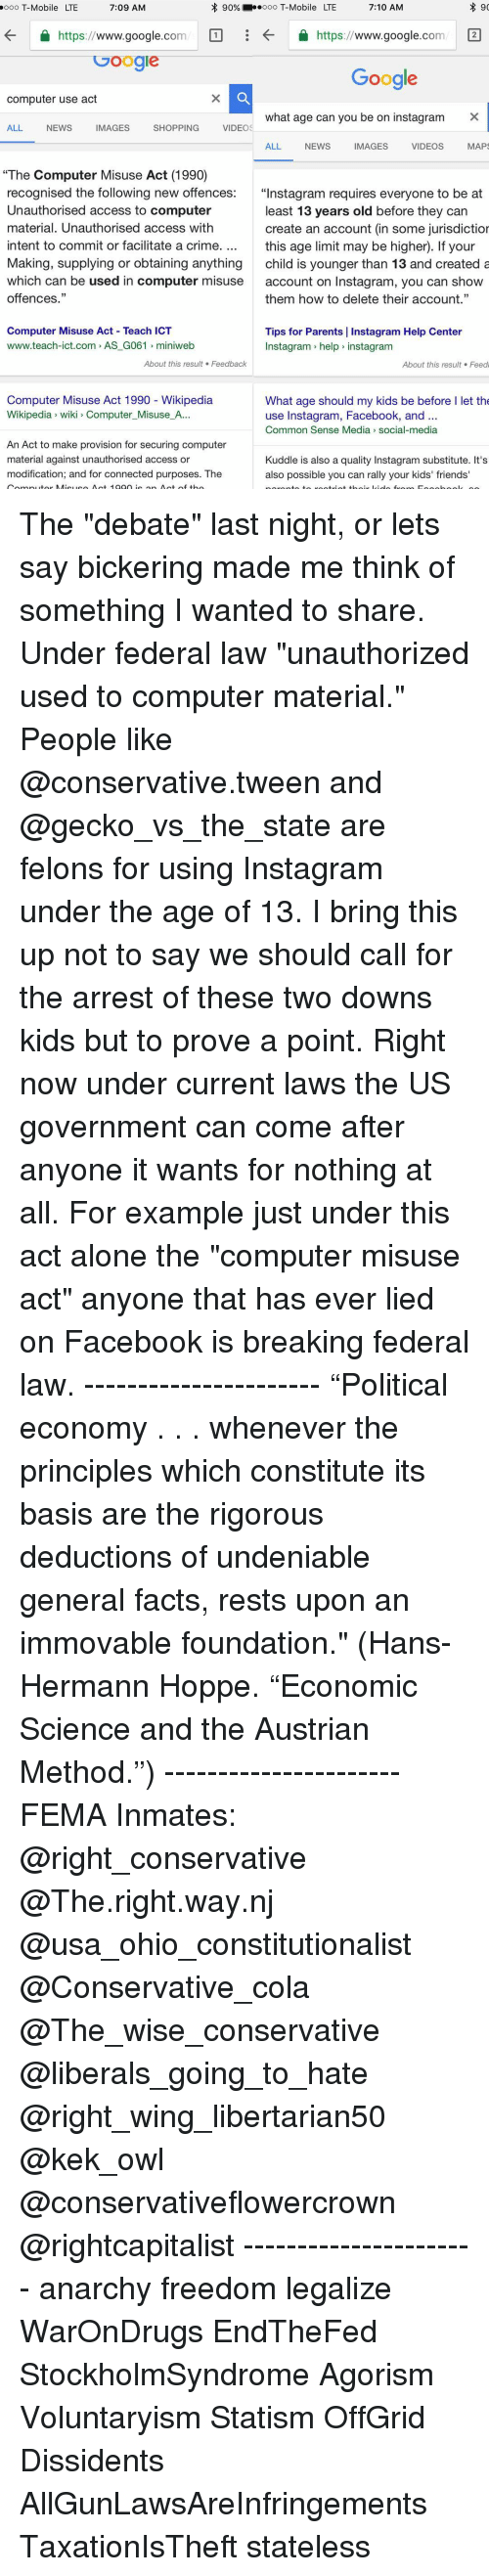 """debate-last-night: 90  90% ooo T-Mobile LTE  7:10 AM  oooo T-Mobile LTE  7:09 AM  https  https  Google  OOgle  Computer use act  what age can you be on instagram X  NEWS  SHOPPING  ALL  IMAGES  VIDEOS  VIDEOS  MAP  ALL  NEWS  IMAGES  """"The Computer Misuse Act (1990)  recognised the following new offences:  Instagram requires everyone to be at  Unauthorised access to computer  least 13 years old before they can  material. Unauthorised access with  create an account (in some jurisdictior  intent to commit or facilitate a crime  this age limit may be higher). If your  Making, supplying or obtaining anything child is younger than 13 and created a  which can be used in computer misuse  account on Instagram, you can show  offences  33  them how to delete their account.""""  Computer Misuse Act Teach ICT  Tips for Parents l Instagram Help Center  www.teach-ict.com AS G061 miniweb  Instagram help instagram  About this result Feedback  About this result Feedi  Computer Misuse Act 1990 Wikipedia  What age should my kids be before l let the  Wikipedia wiki Computer Misuse A...  use Instagram, Facebook, and  Common Sense Media social-media  An Act to make provision for securing computer  material against unauthorised access or  Kuddle is also a quality Instagram substitute. It's  modification; and for connected purposes. The  also possible you can rally your kids' friends'  f th The """"debate"""" last night, or lets say bickering made me think of something I wanted to share. Under federal law """"unauthorized used to computer material."""" People like @conservative.tween and @gecko_vs_the_state are felons for using Instagram under the age of 13. I bring this up not to say we should call for the arrest of these two downs kids but to prove a point. Right now under current laws the US government can come after anyone it wants for nothing at all. For example just under this act alone the """"computer misuse act"""" anyone that has ever lied on Facebook is breaking federal law. ---------------------- """"P"""